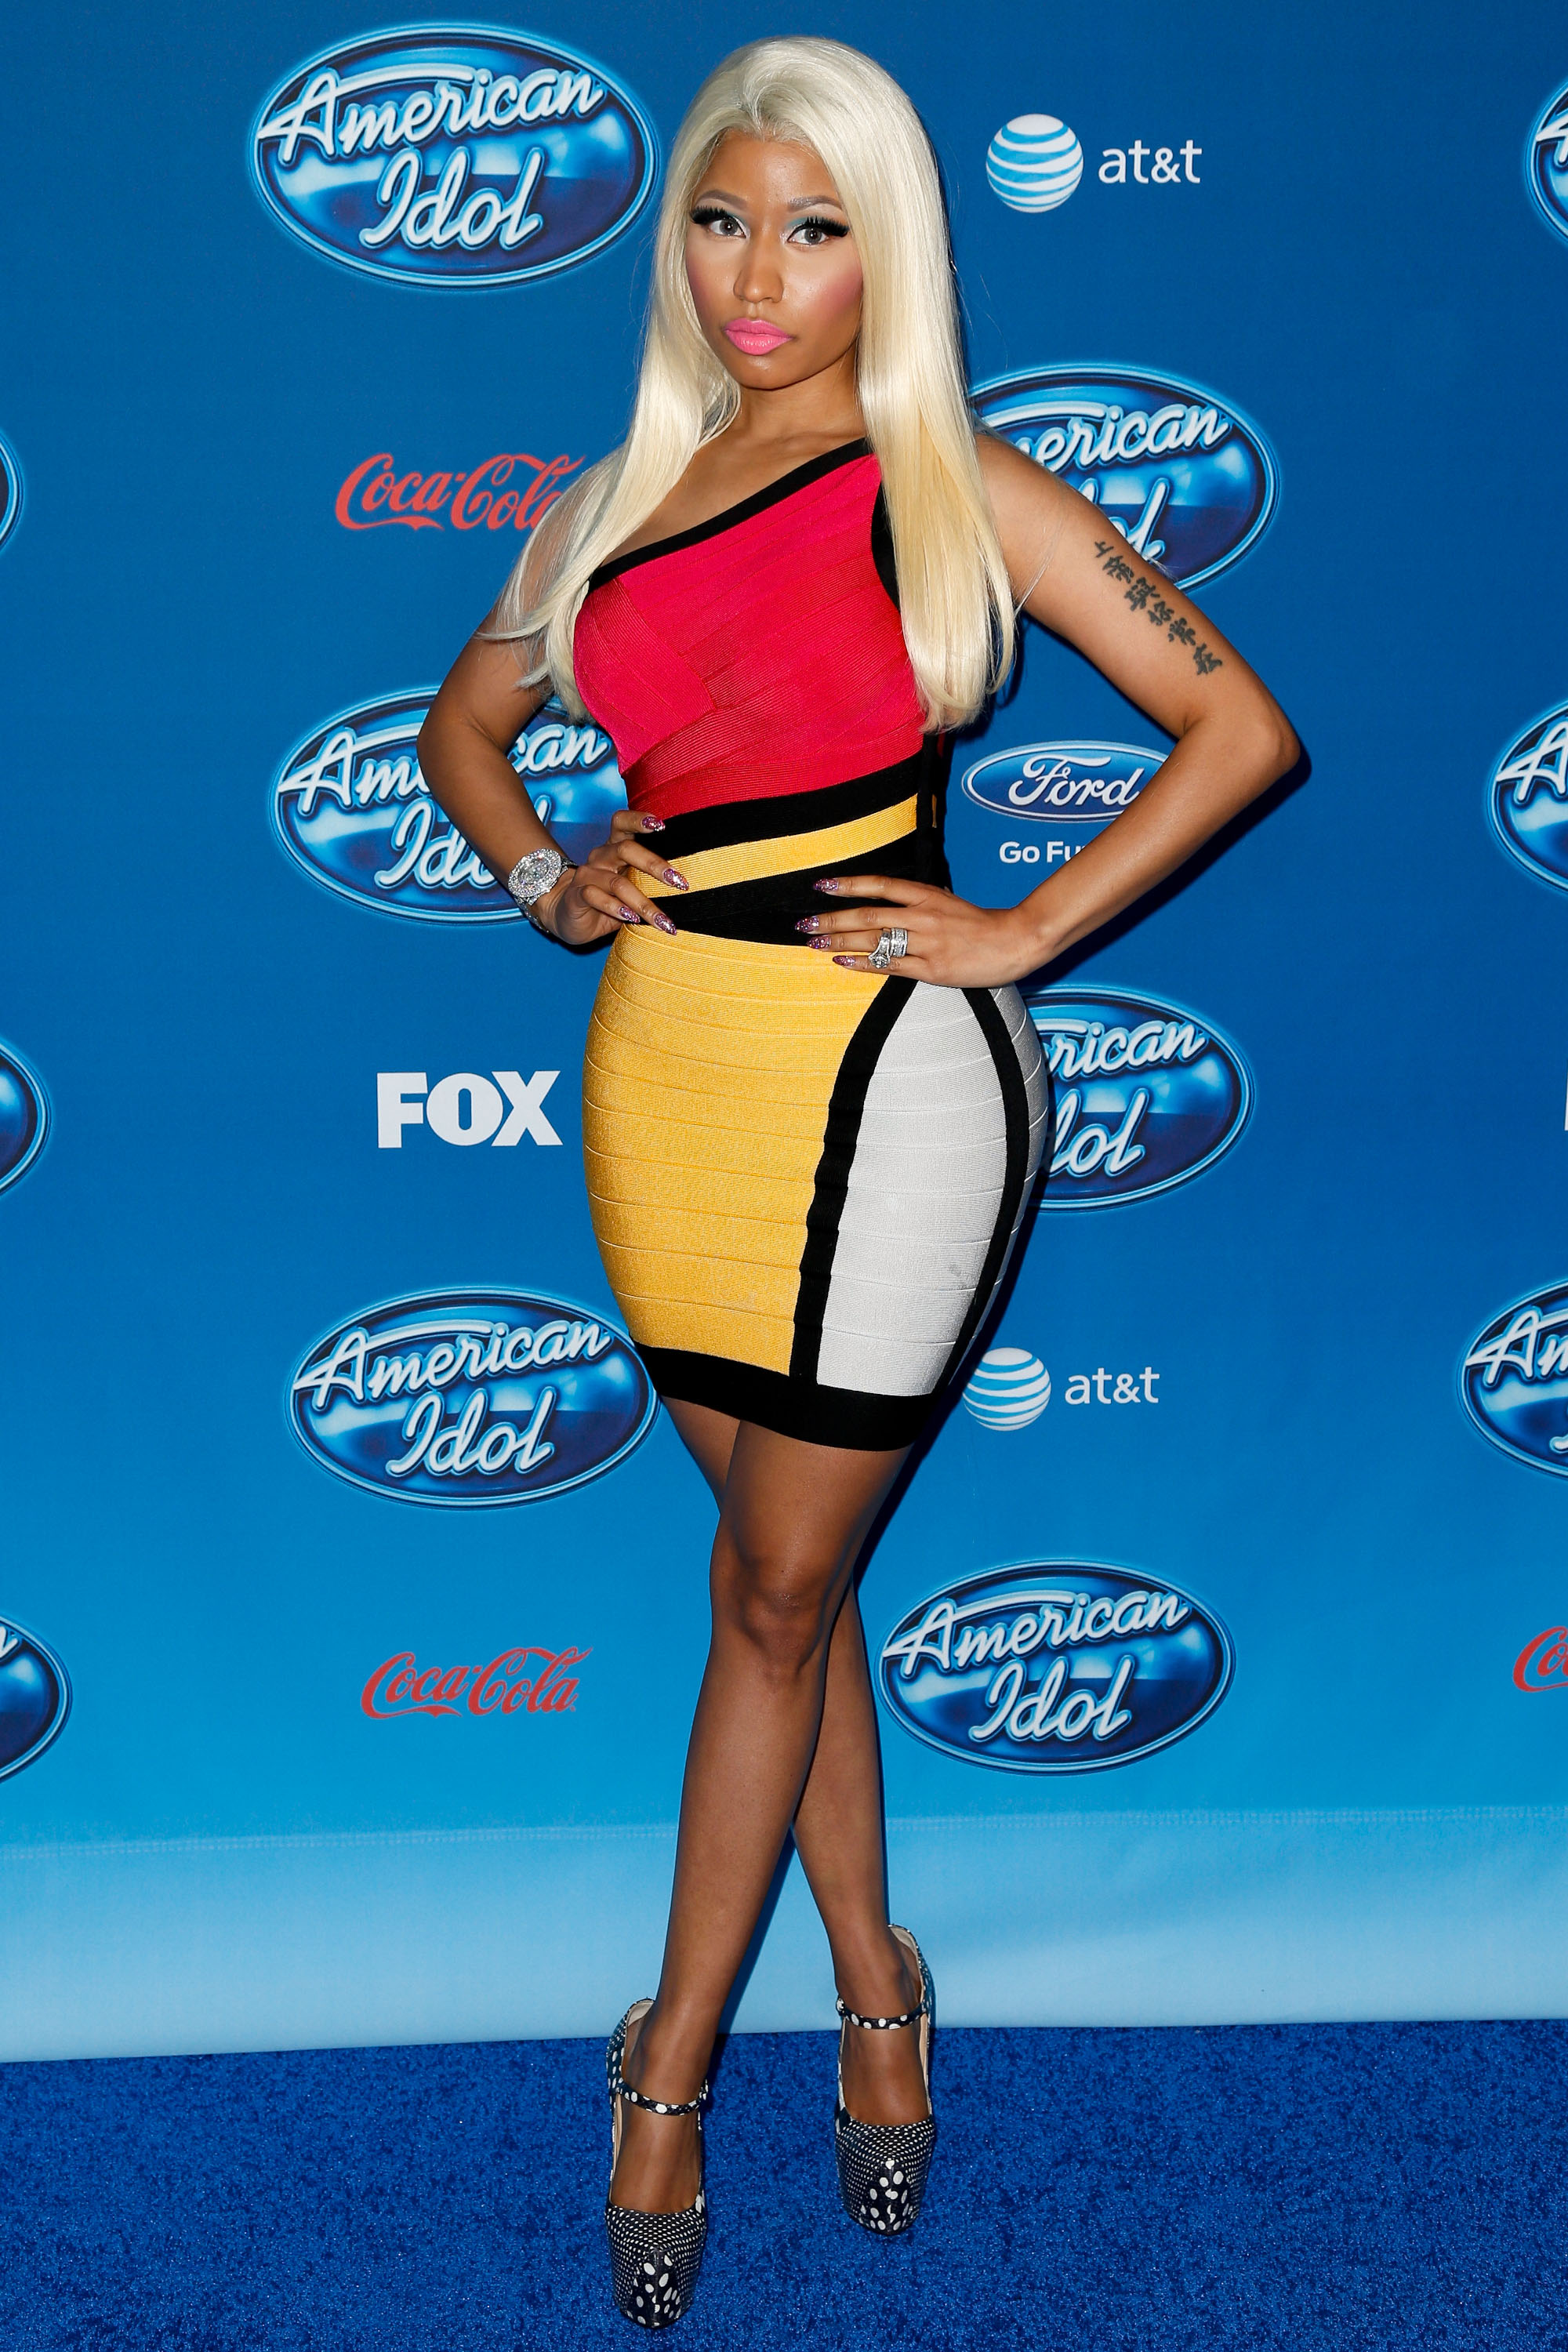 Nicki minaj no complaints about idol tv envy nicki minaj voltagebd Gallery